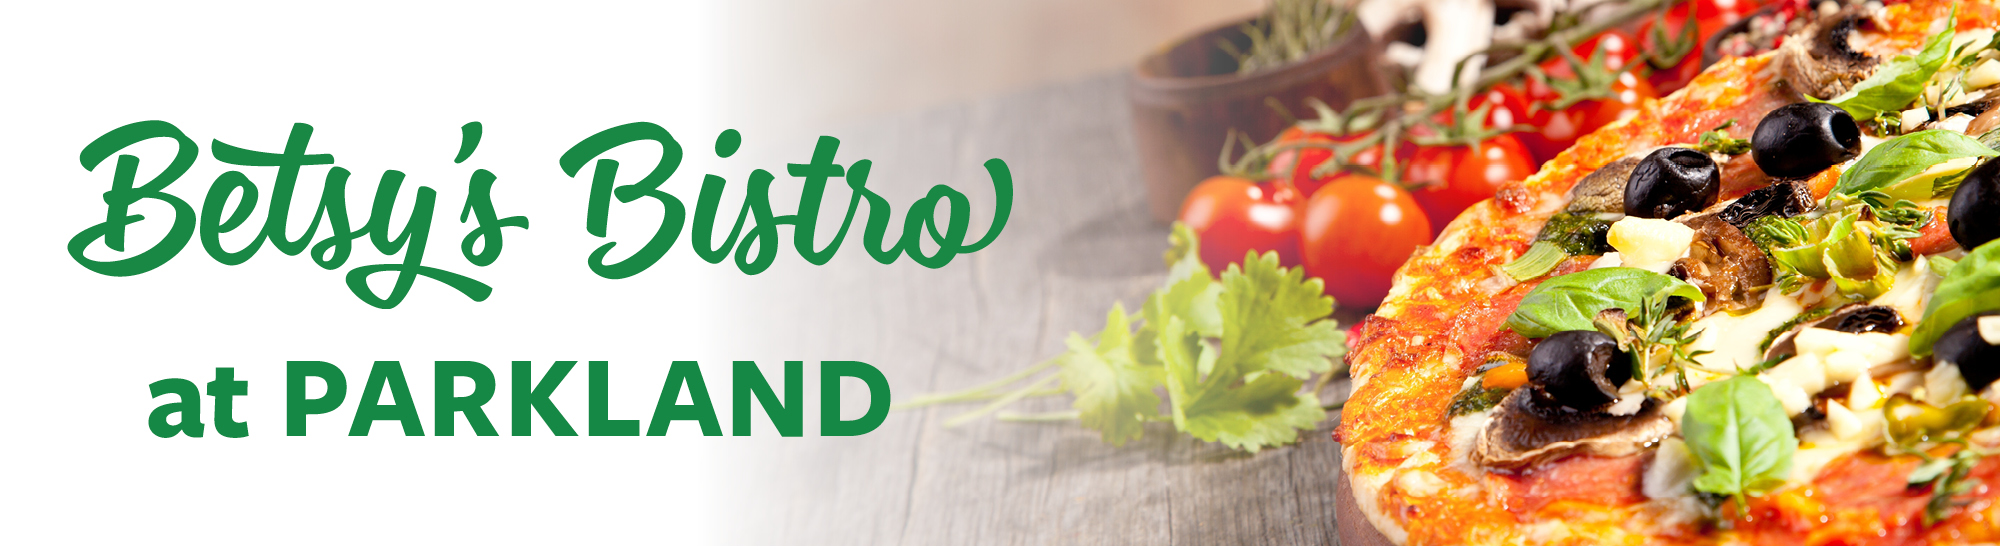 Betsy's Bistro at Parkland